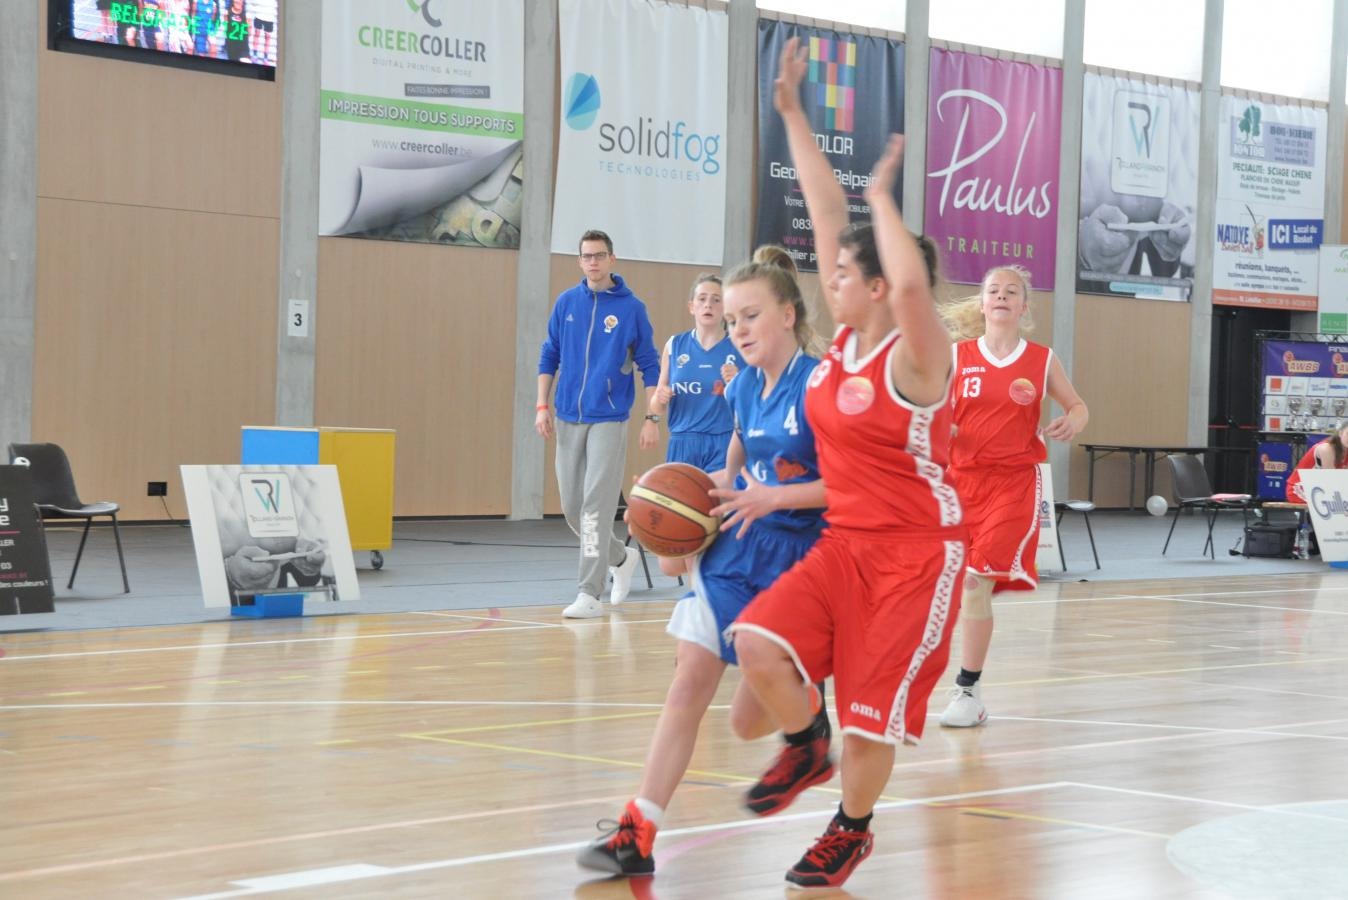 16/04/17 : U16F ROCHEFORT / CINEY - Finale de coupe